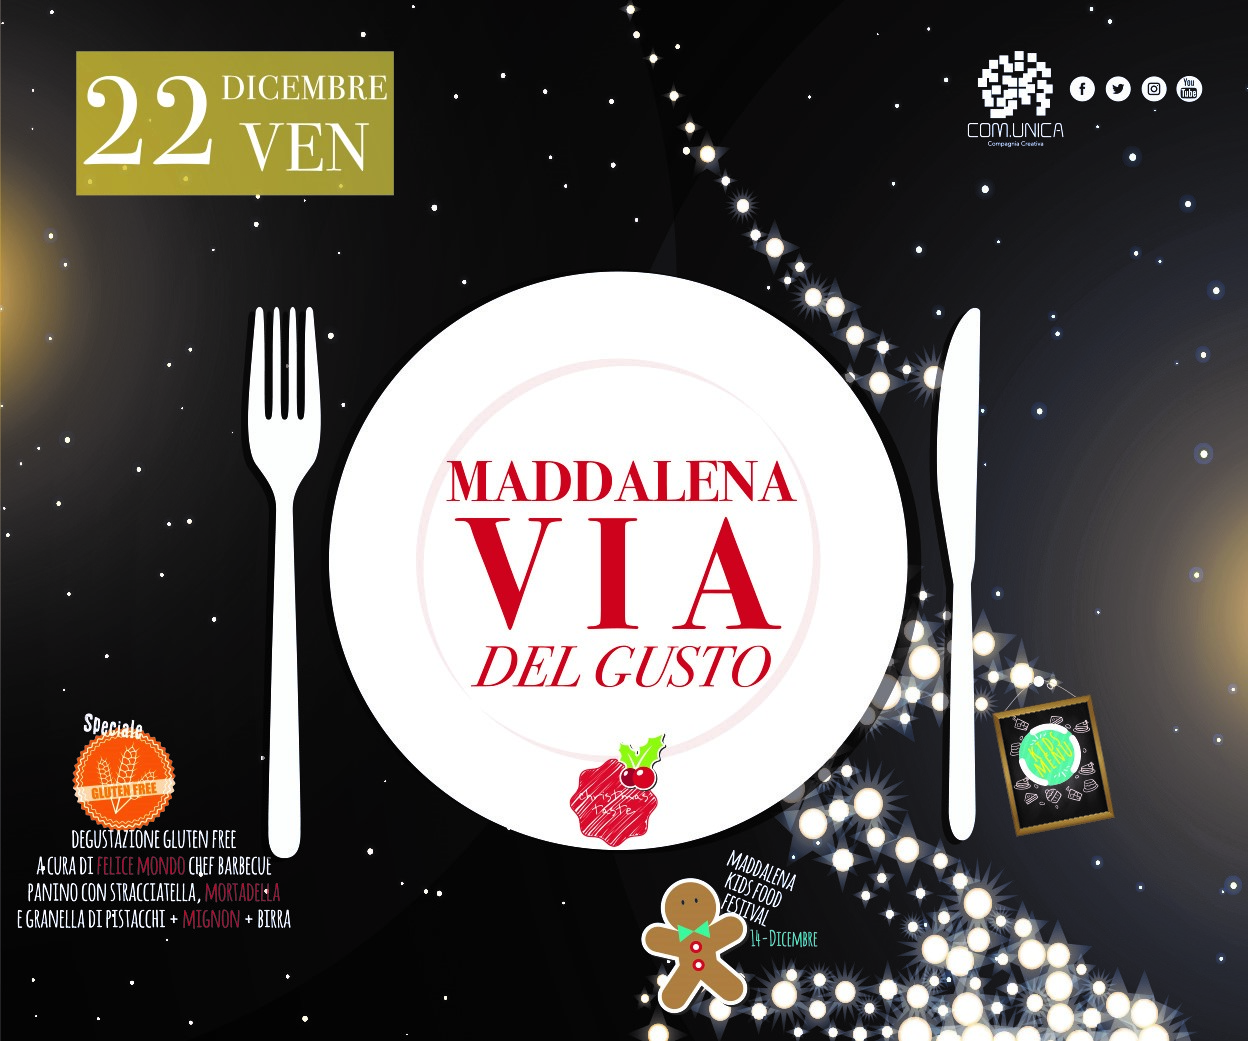 Maddalena via del gusto- medium banner 300x250